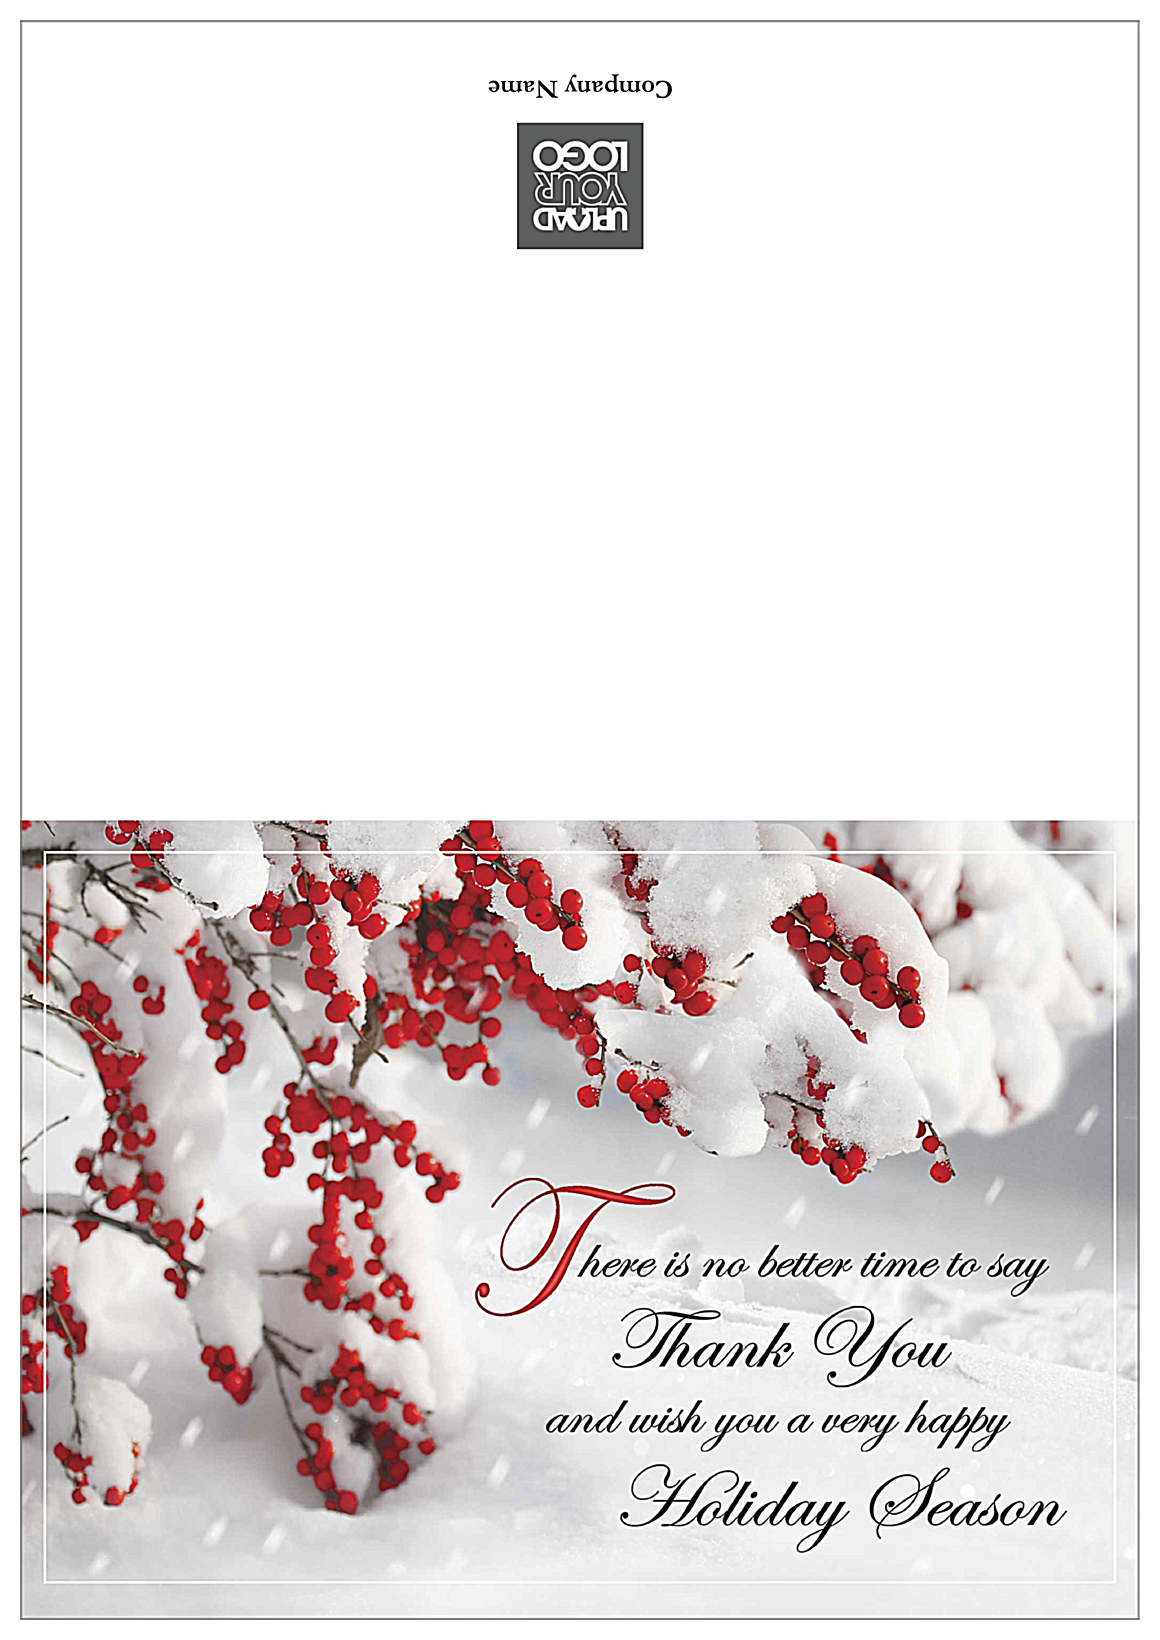 Thank You Holiday front - Greeting Cards Maker